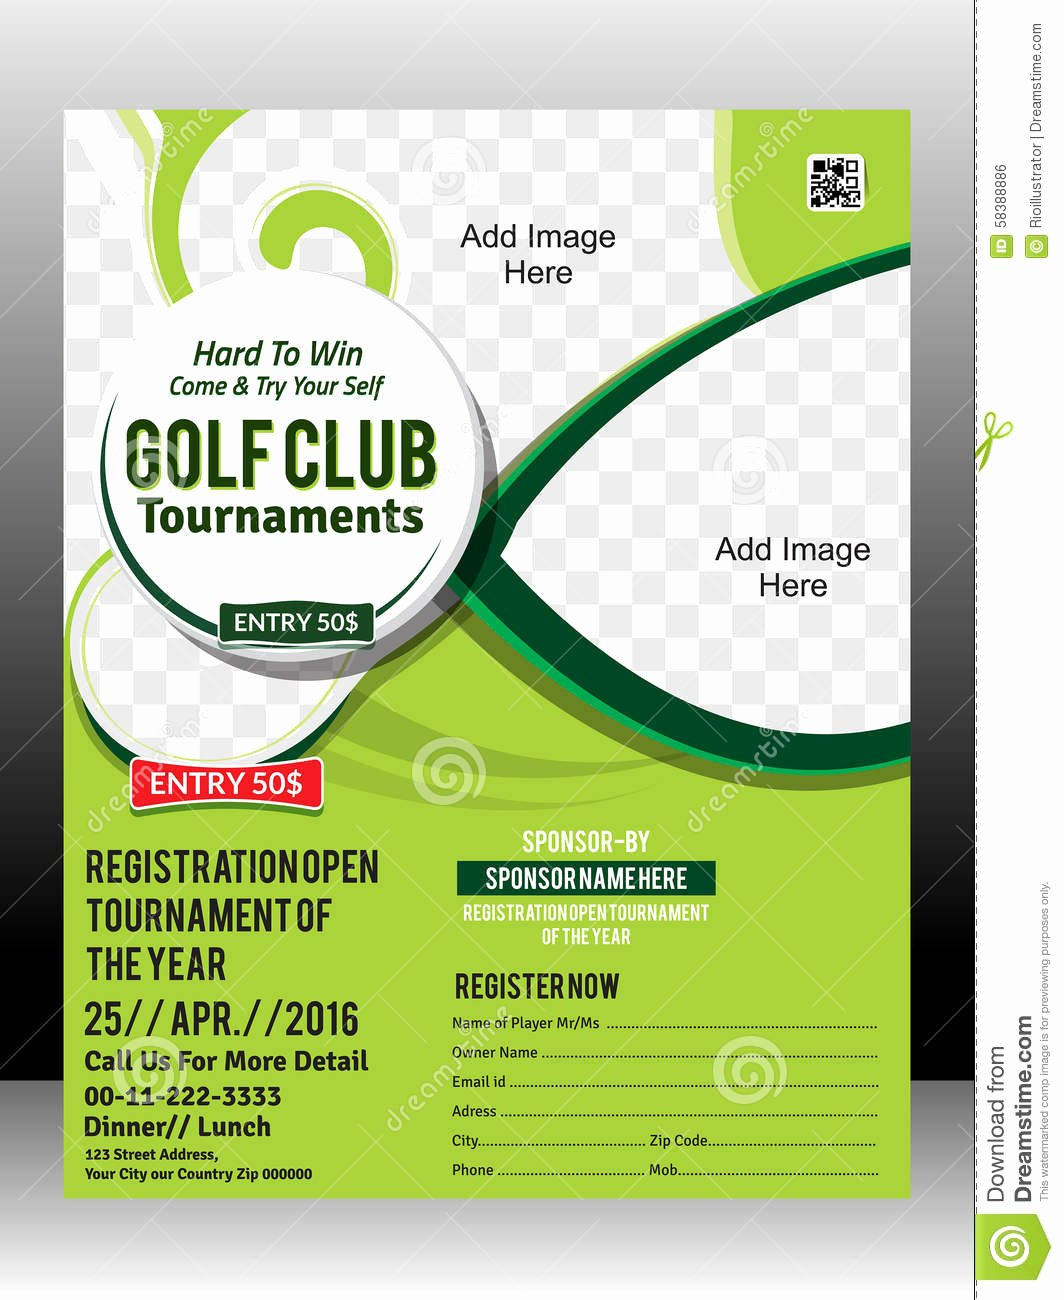 Golf Scramble Flyer Template Luxury Golf Scramble Flyer Template Yourweek D2c345eca25e